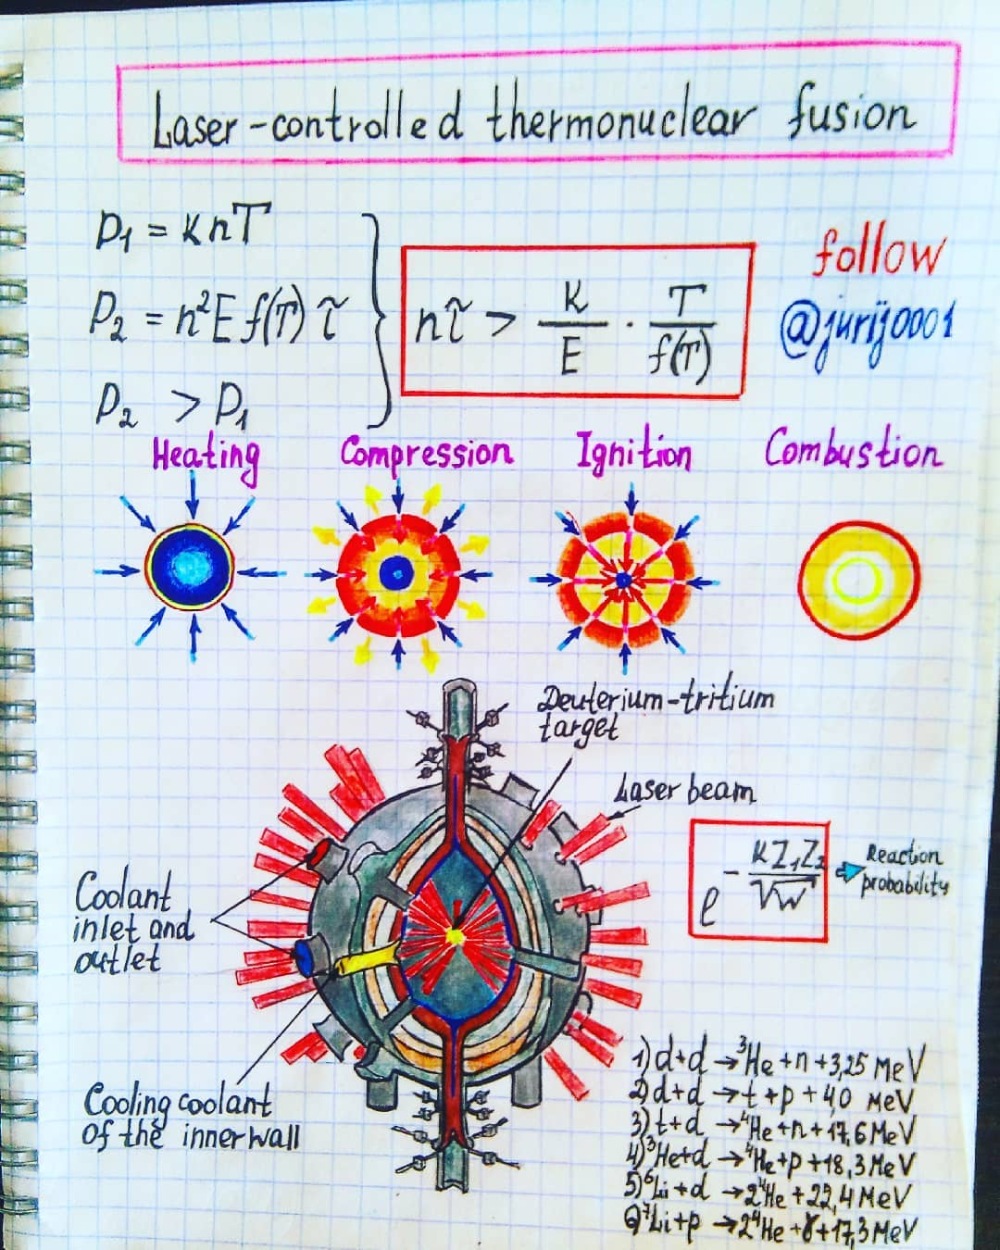 Laser Controlled Thermonuclear Fusion Illustration By Physics